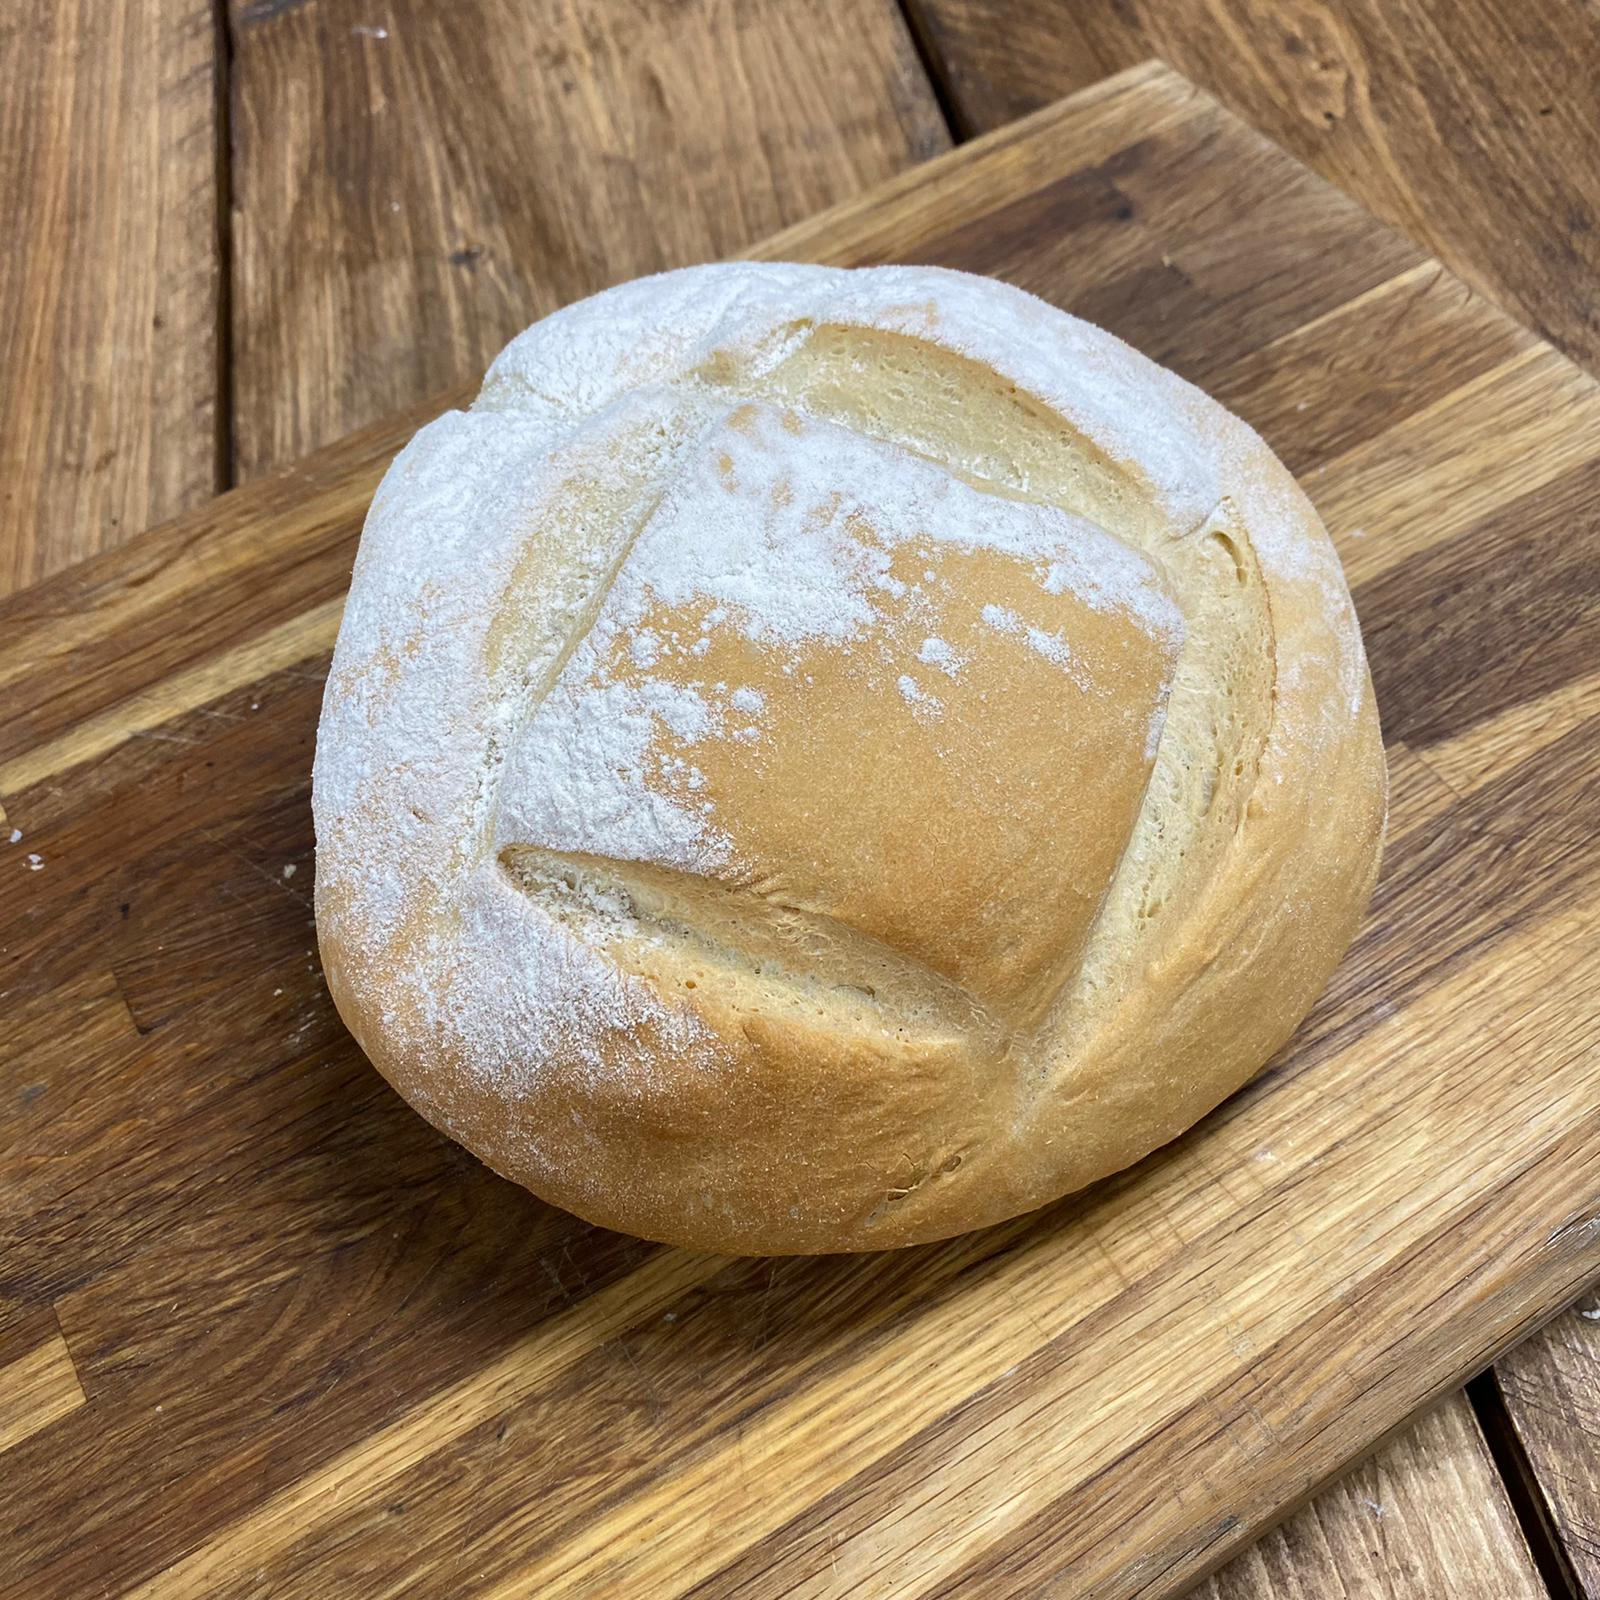 French Country (White Loaf)